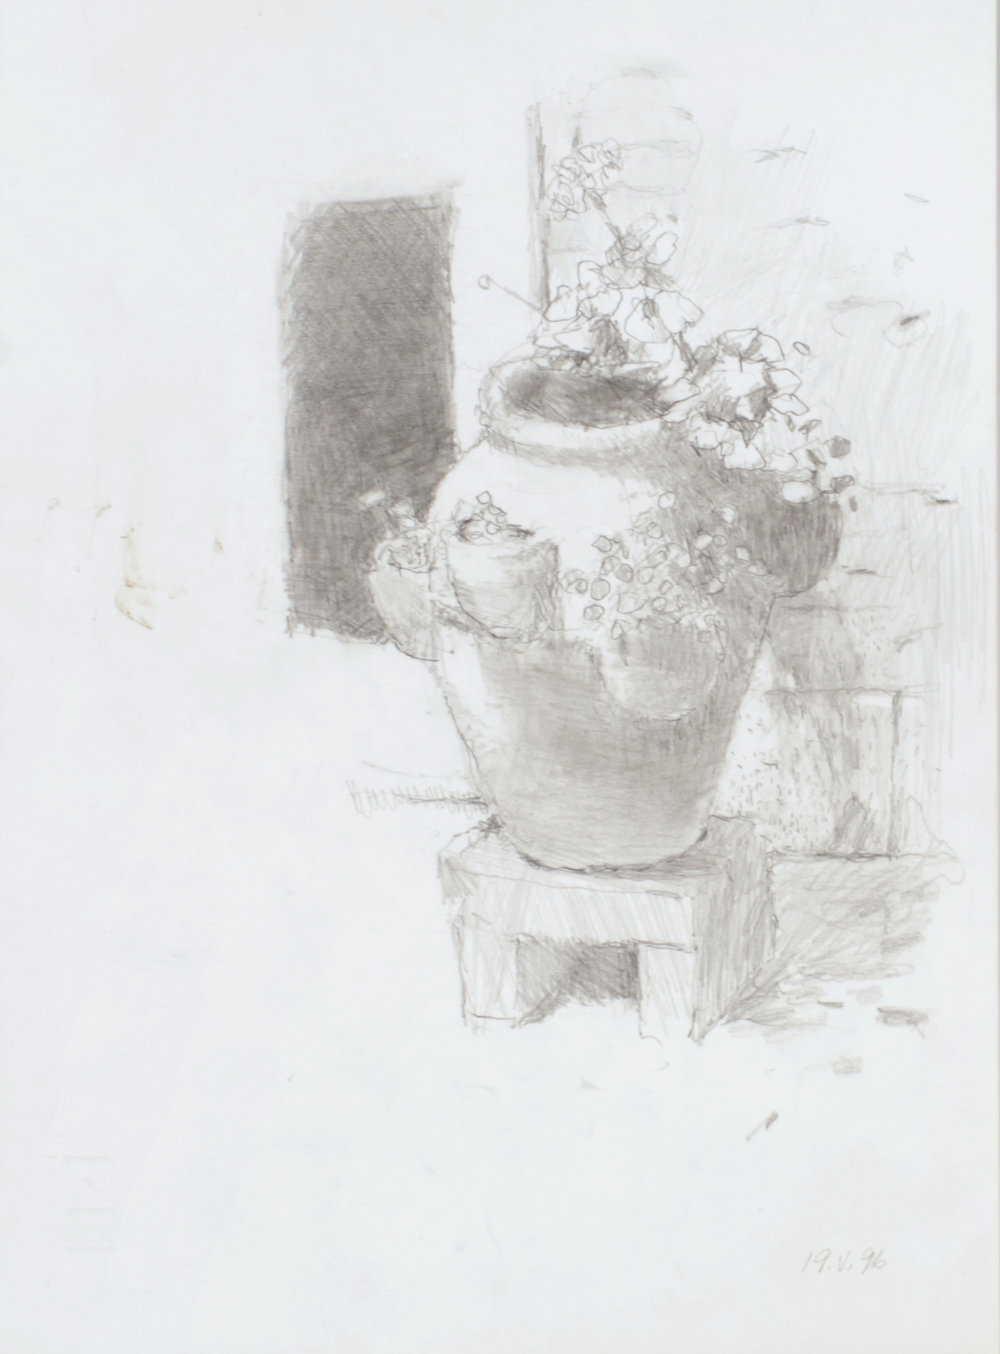 1996_Flower_Pot_in_Venice_Courtyard_pencil_on_paper_13x10in_WPF069.jpg